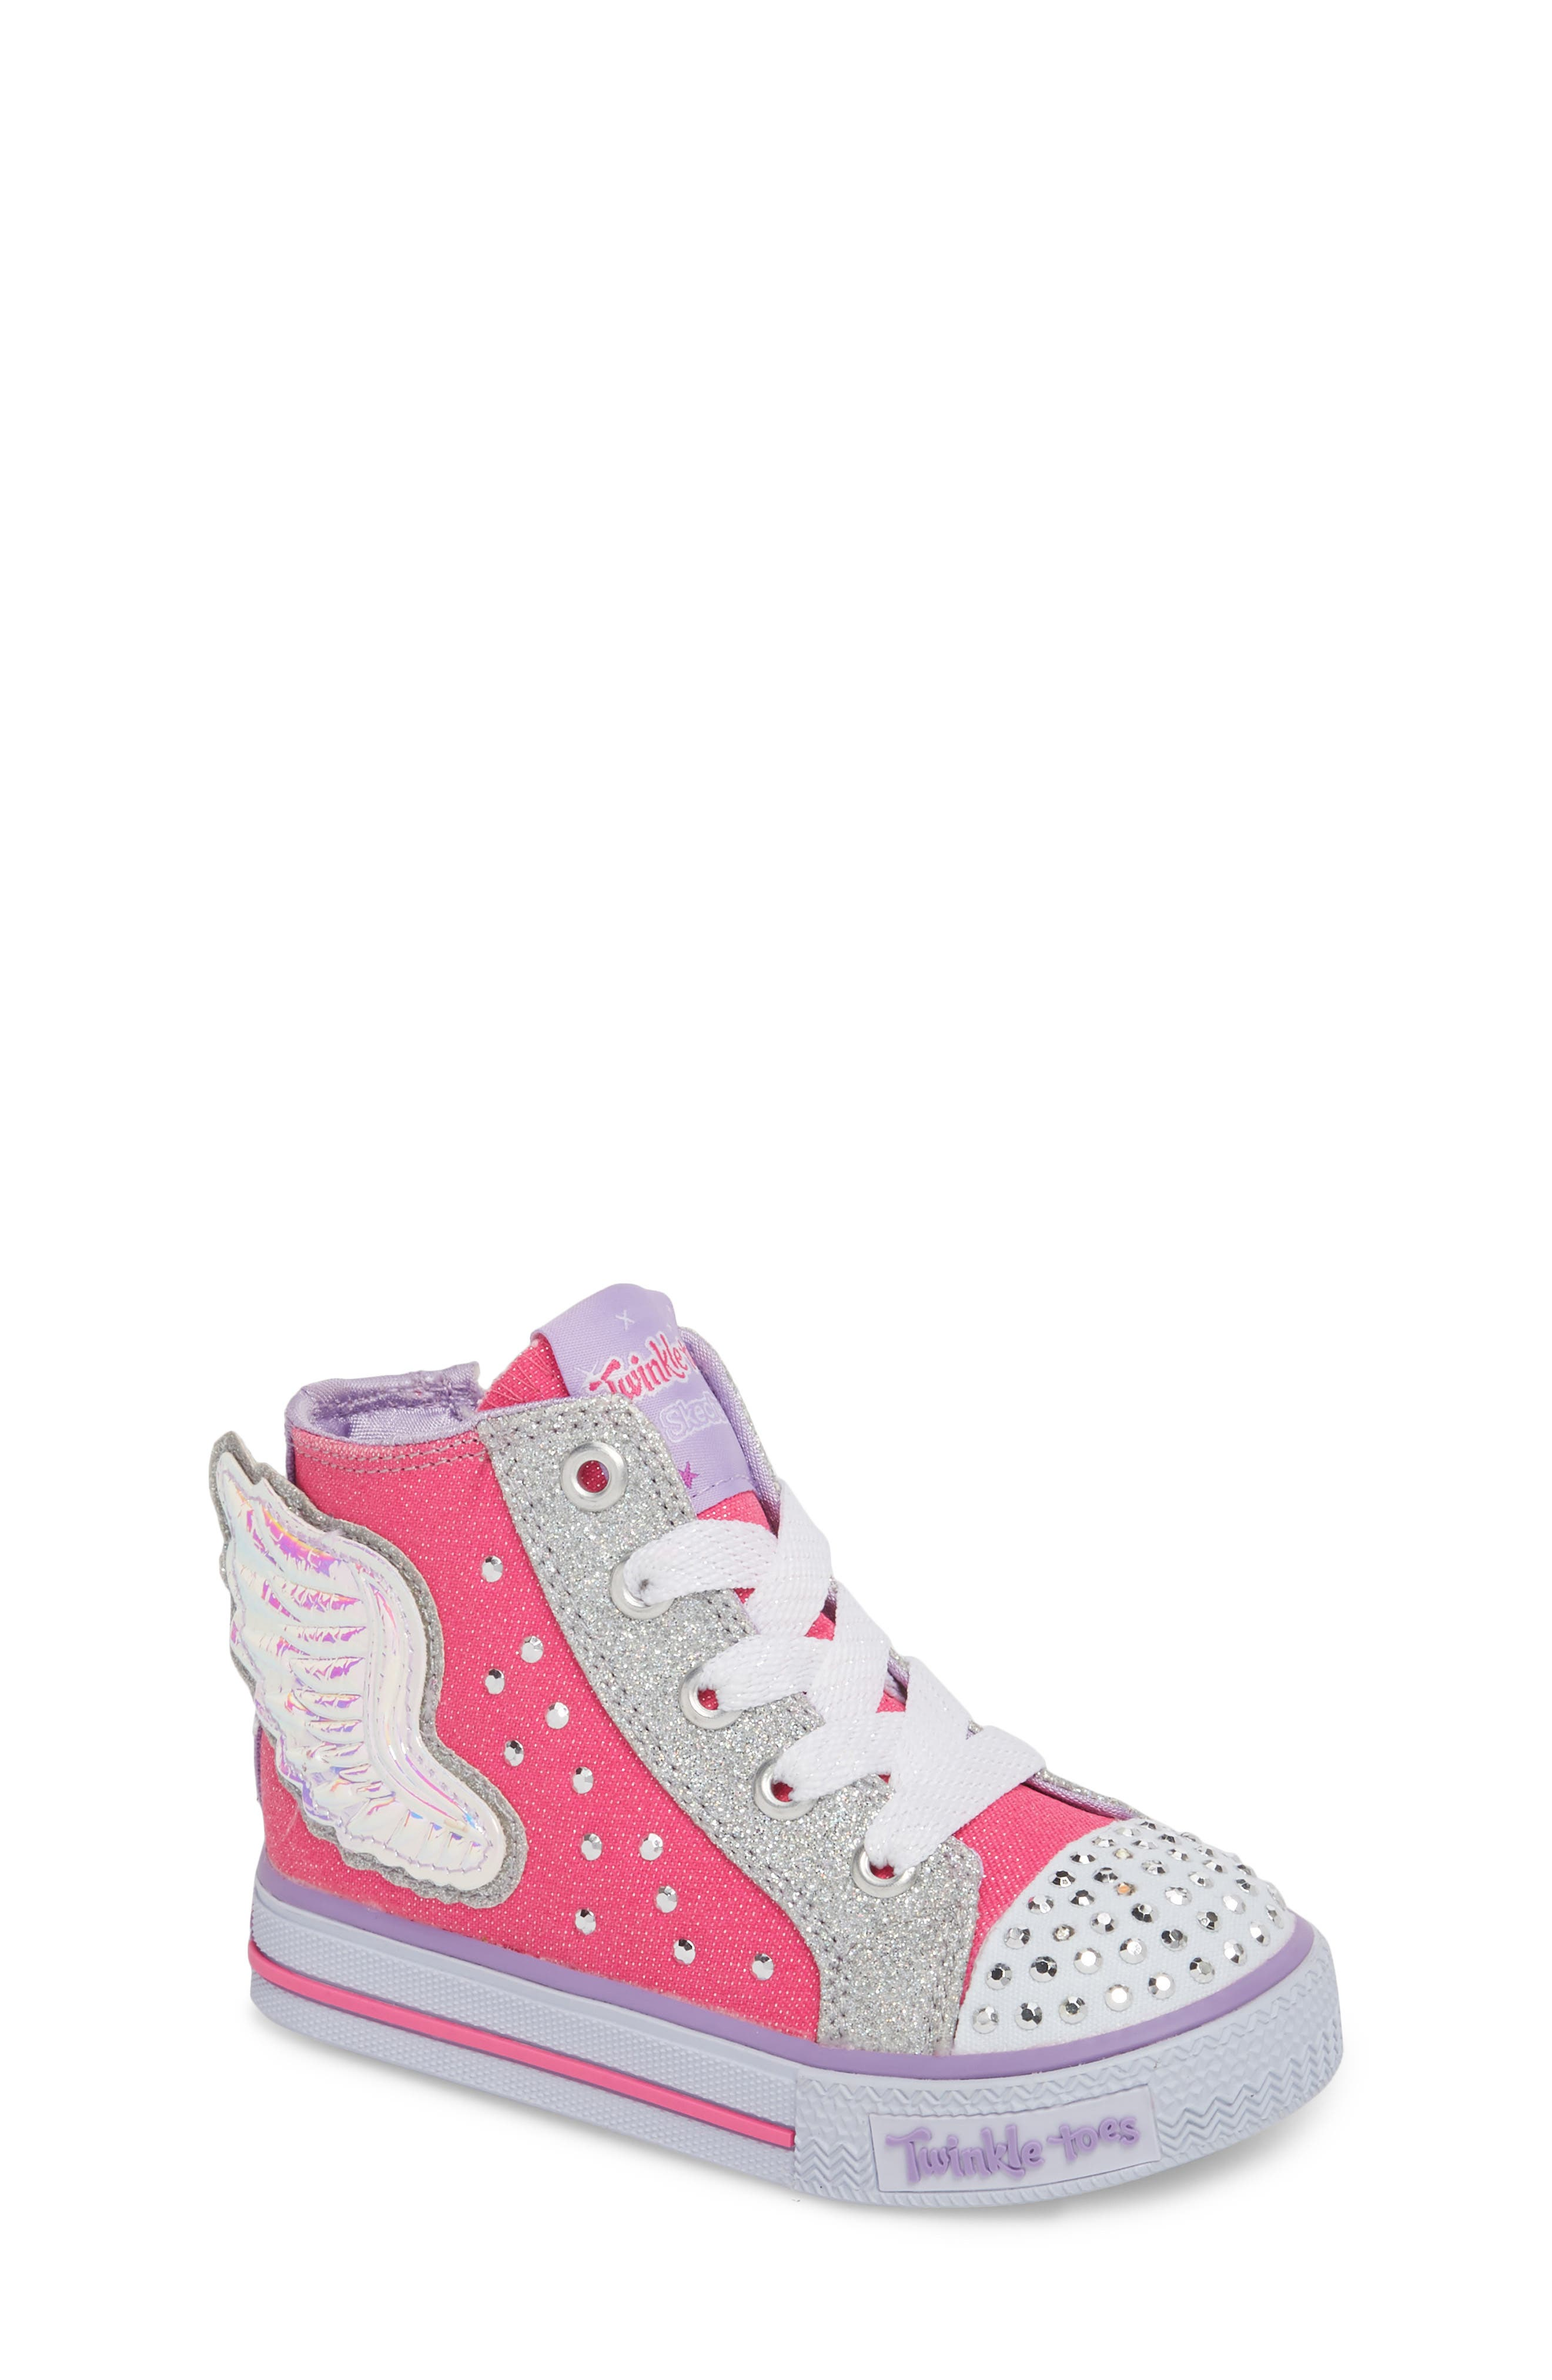 Twinkle Toes Shuffles Fooling Flutters Light-Up High Top Sneaker,                             Main thumbnail 1, color,                             Hot Pink/ Silver